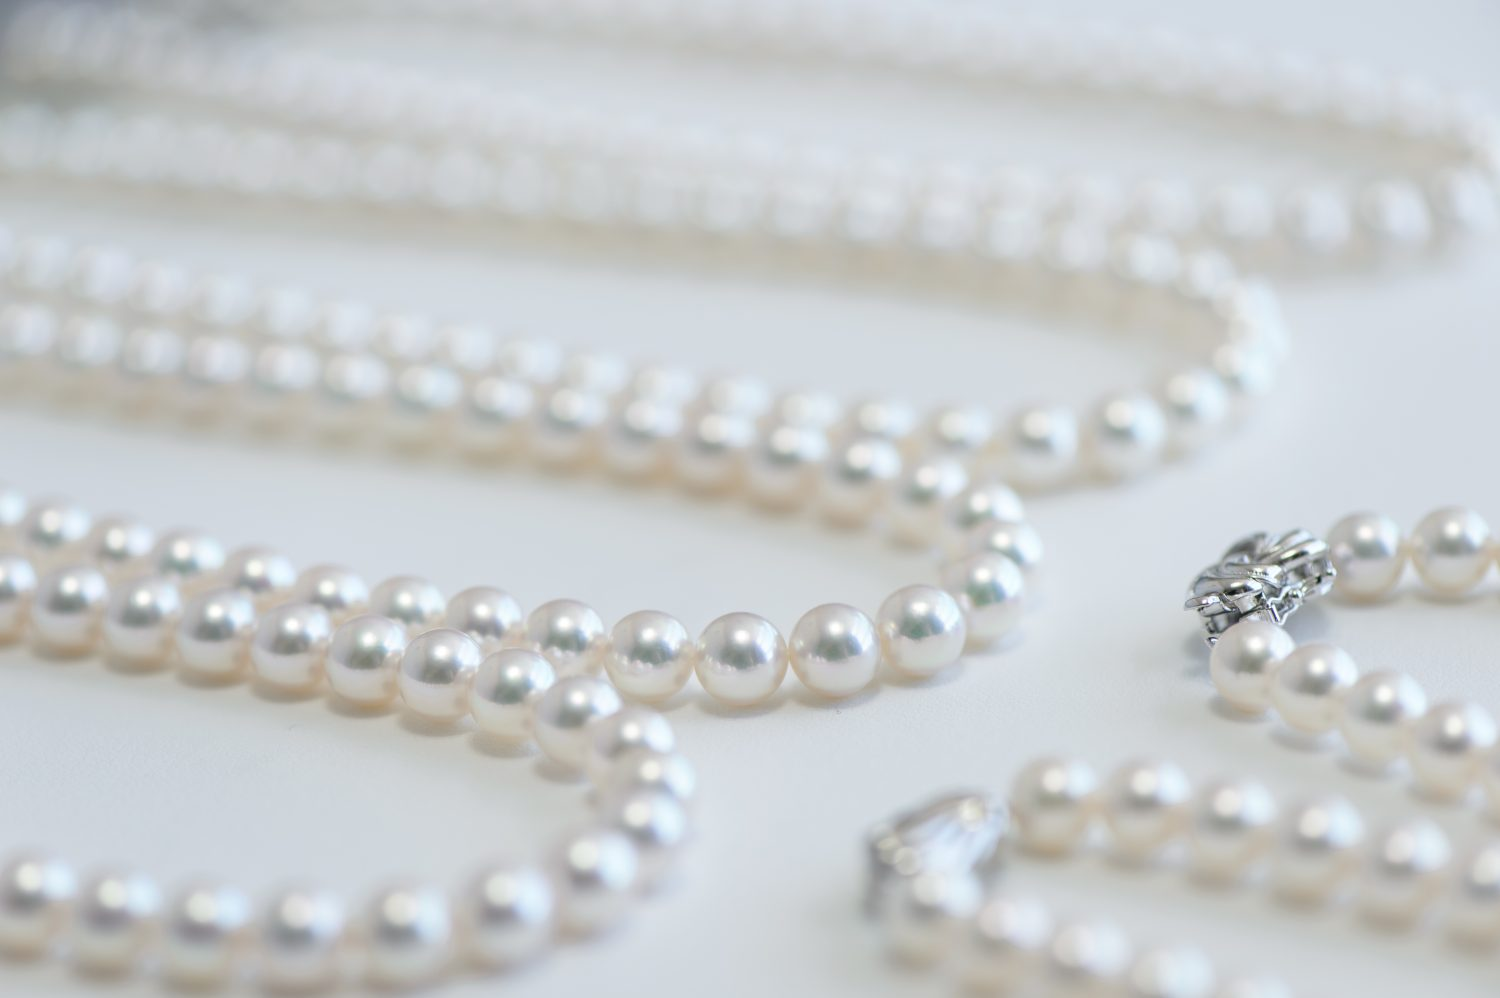 The beautiful Japanese pearls straight from the source-Ise Shima